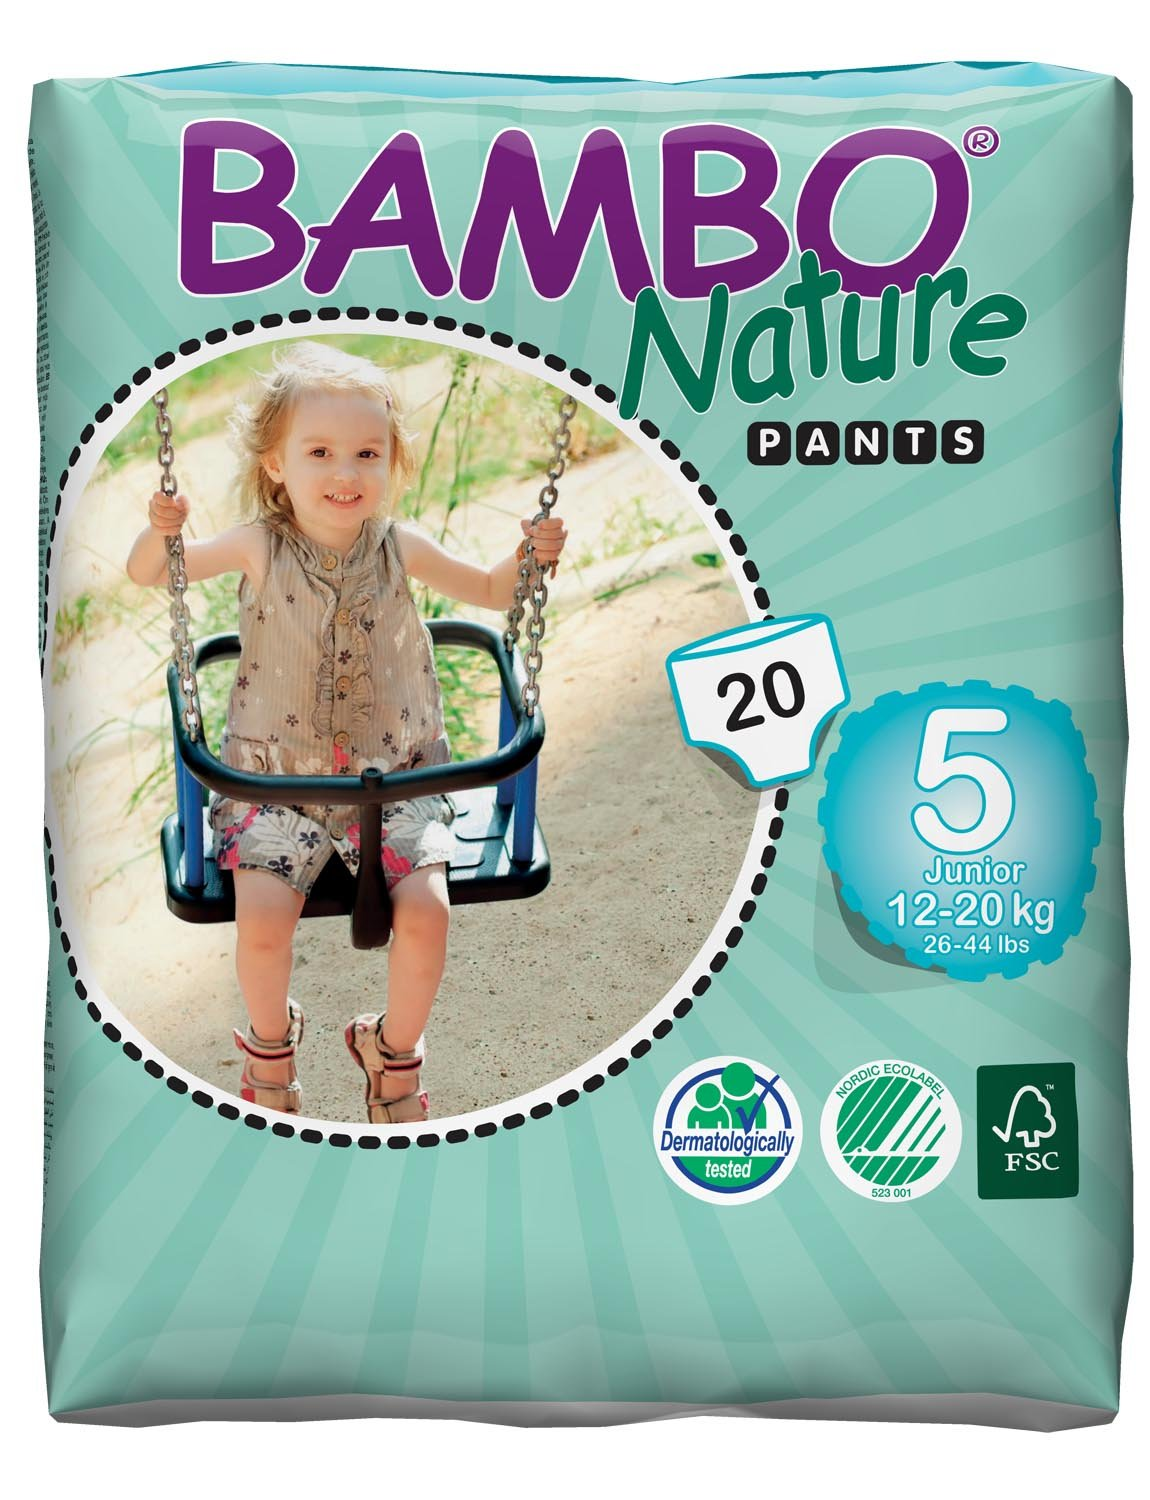 Bambo Nature Junior Training Pants - Size 5 (12-20 kg, 26-44 lb) - 3 Packs of 20 Abena